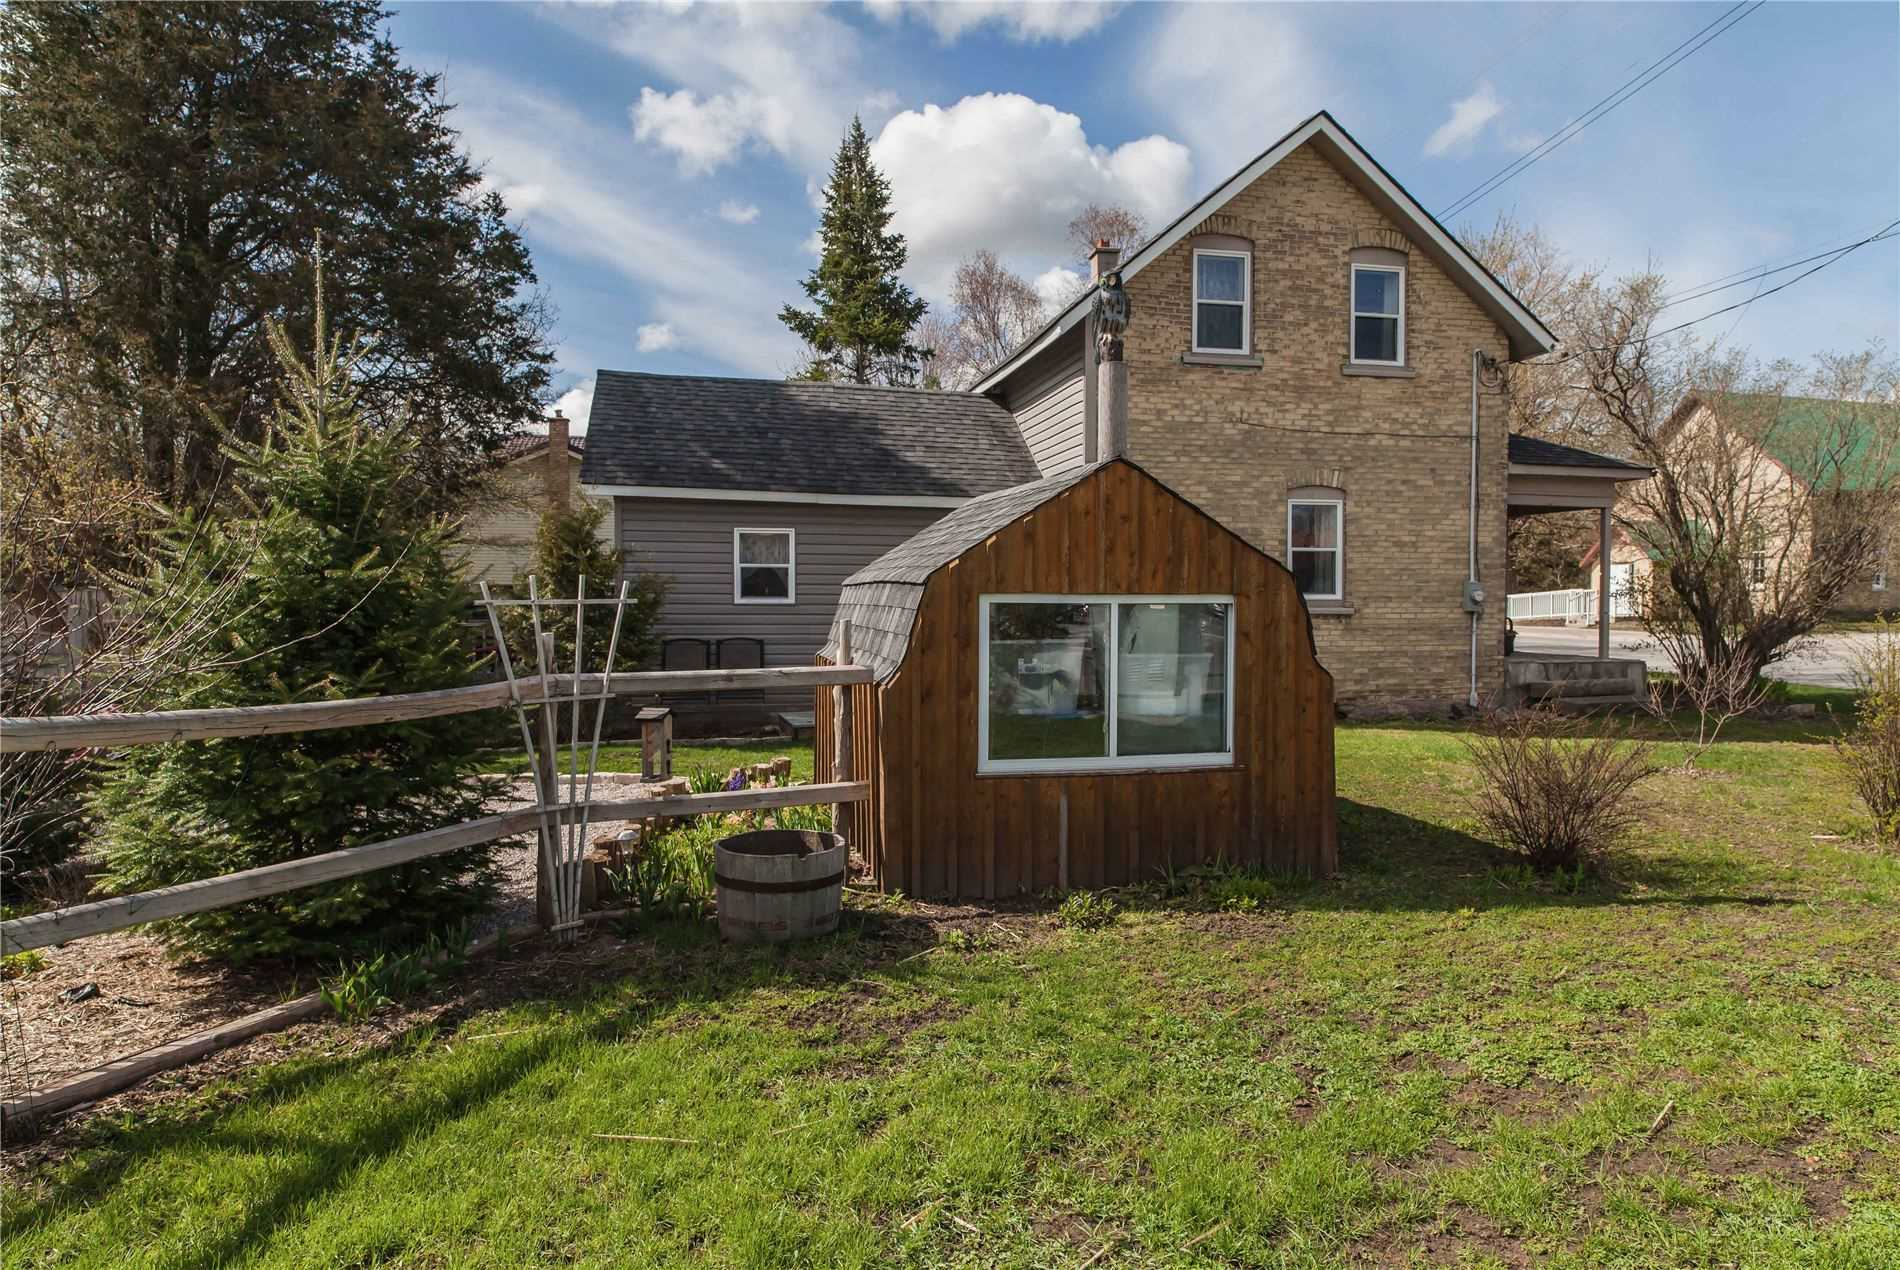 431 Bruce St, South Bruce Peninsula X4662644